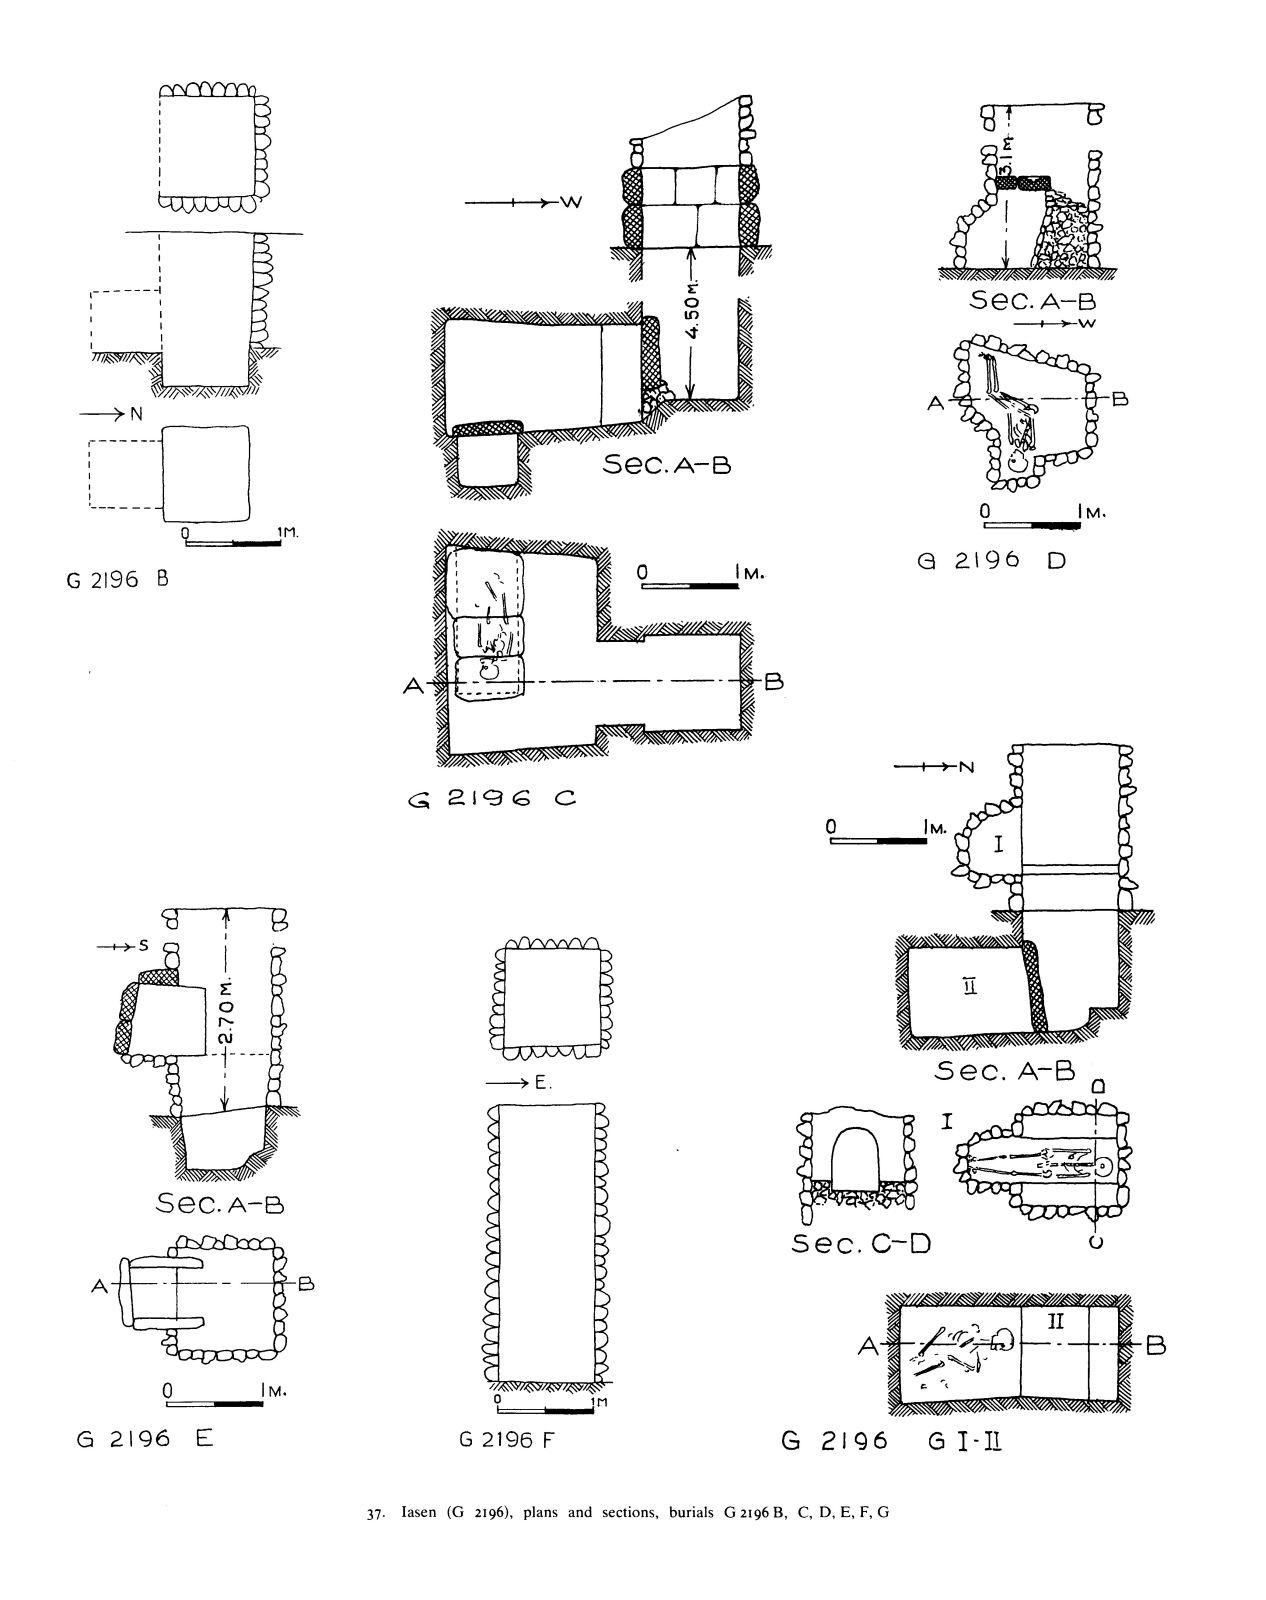 Maps and plans: G 2196, Shaft B-G